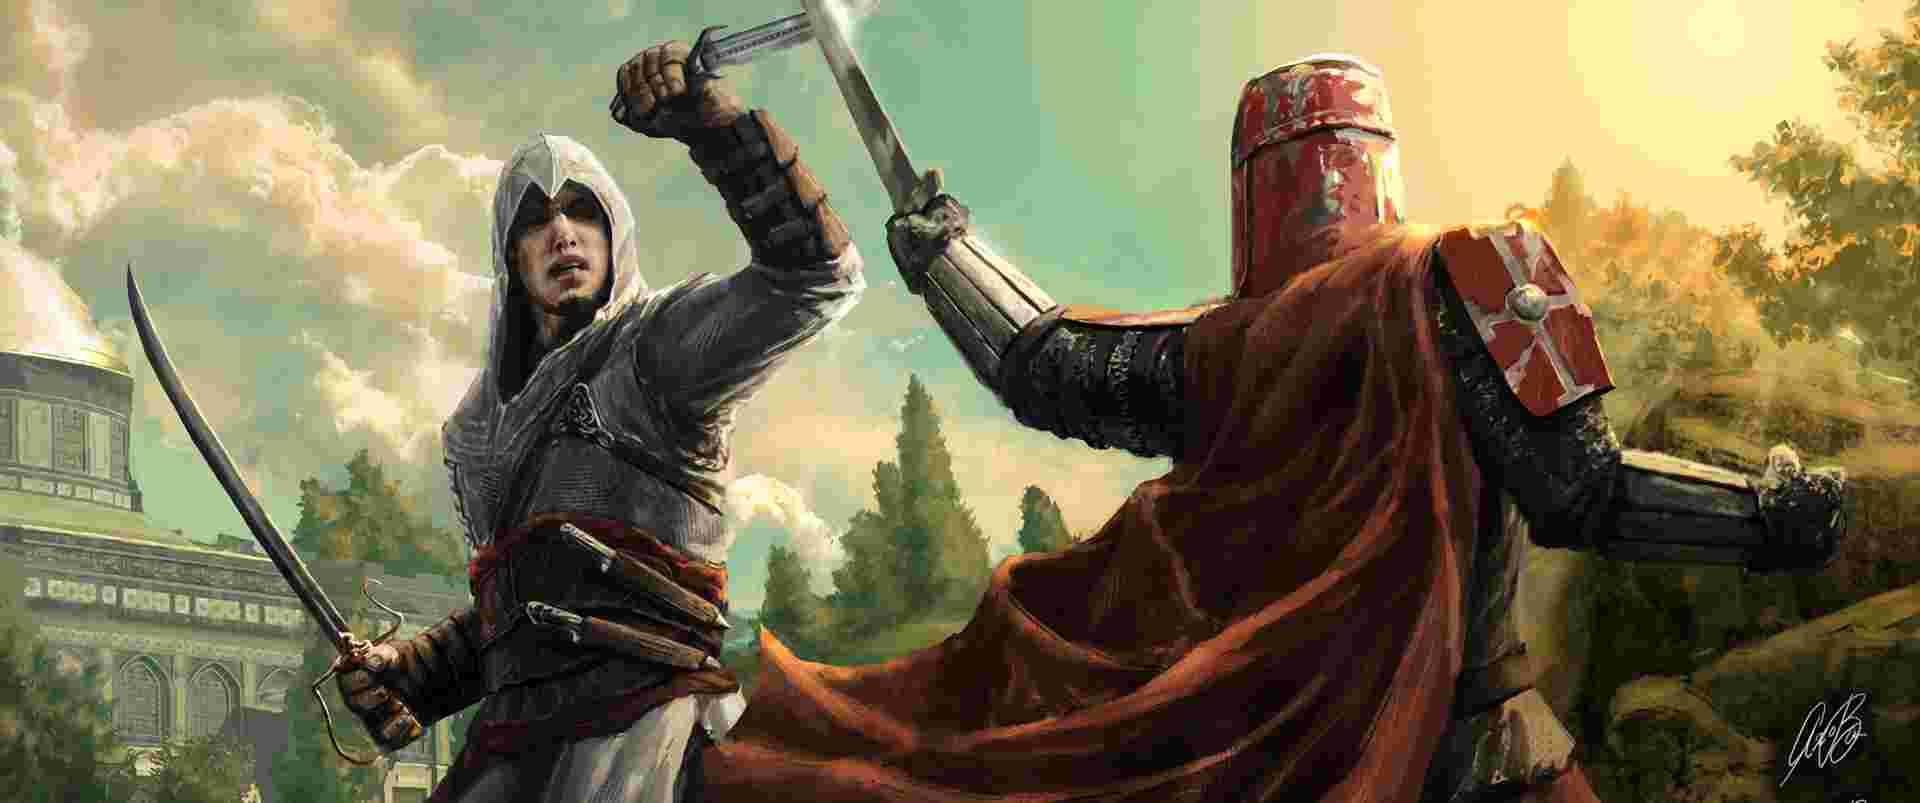 Assassin vs Templar